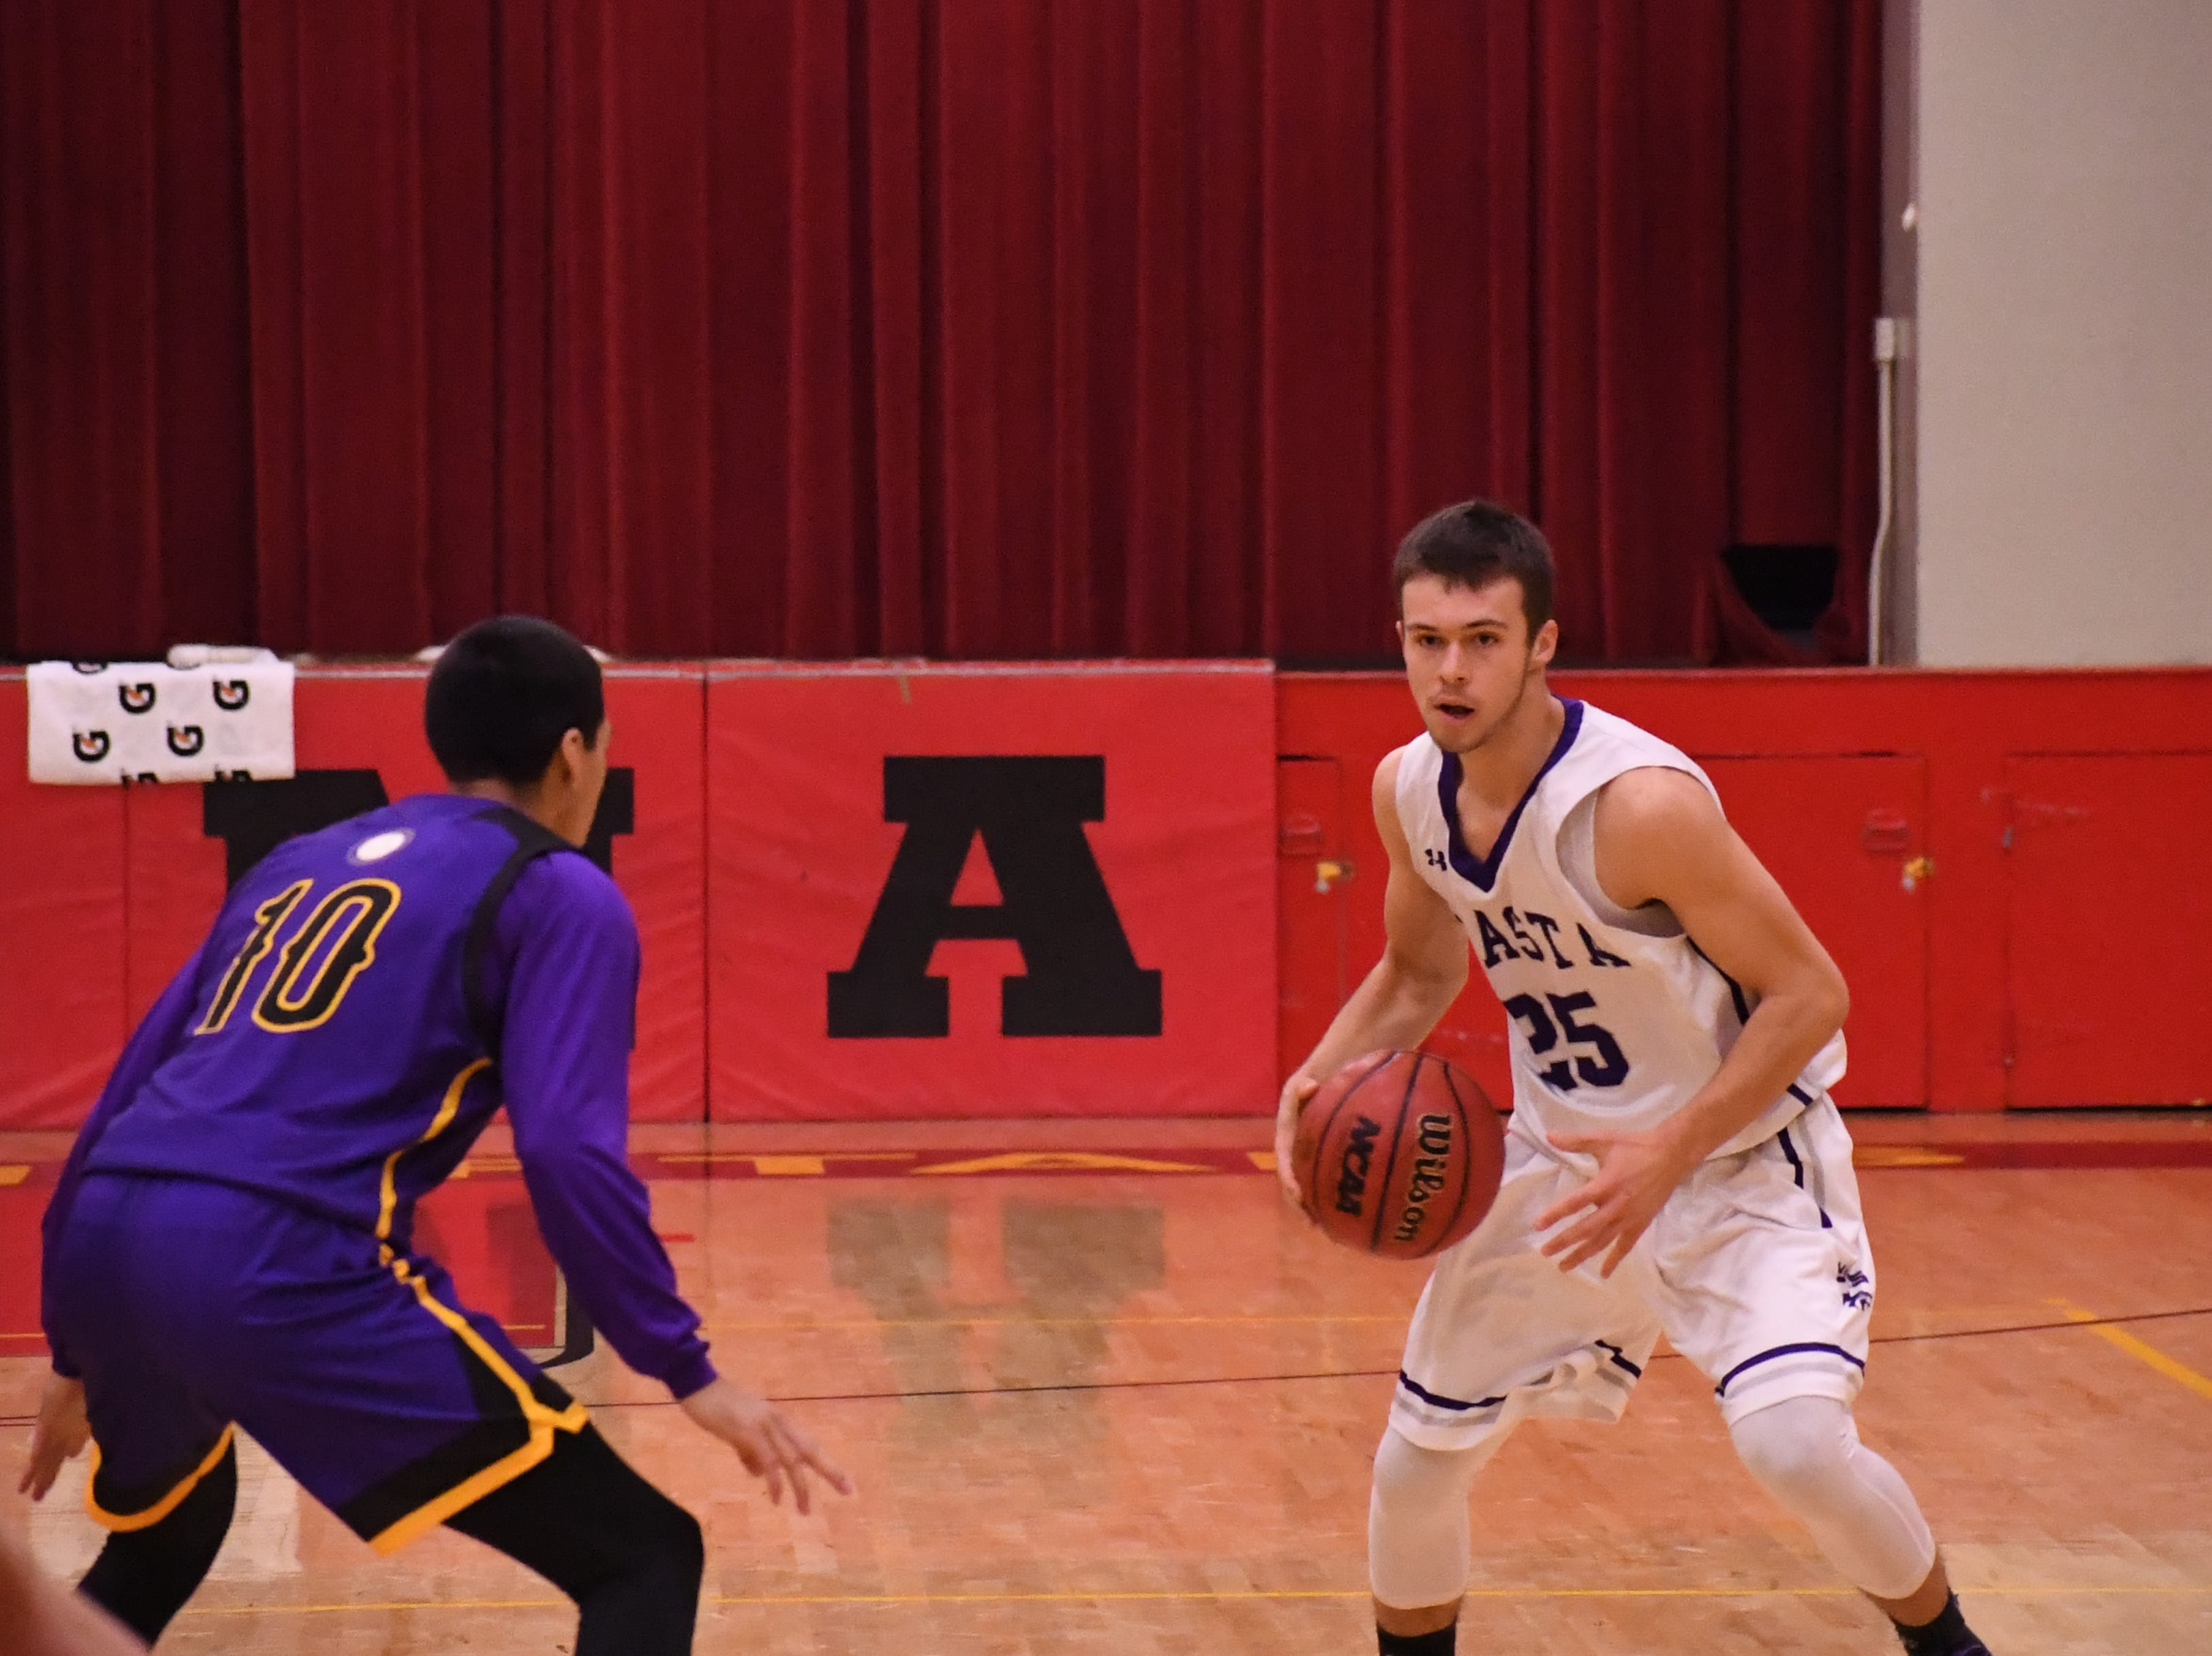 Shasta guard JT Beasley (25) looks to pass after crossing half court.